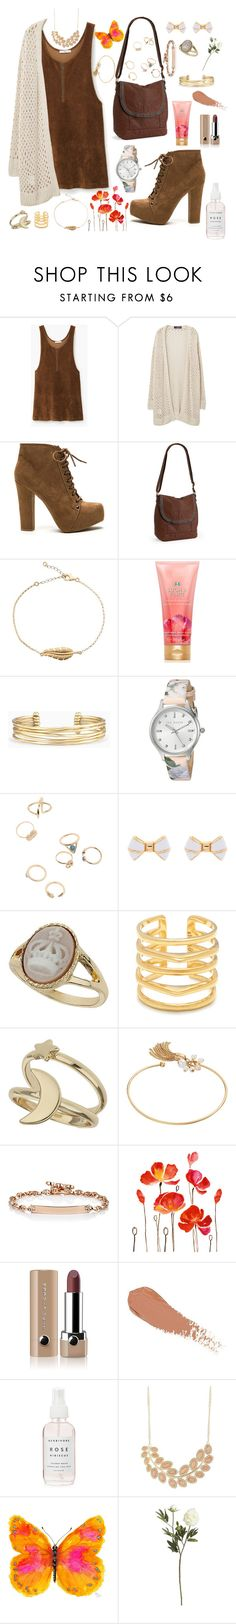 """""""Get In My Car"""" by anishagarner ❤ liked on Polyvore featuring MANGO, Violeta by Mango, Aéropostale, Victoria's Secret, Stella & Dot, Ted Baker, Miss Selfridge, LC Lauren Conrad, Hoorsenbuhs and Marc Jacobs"""